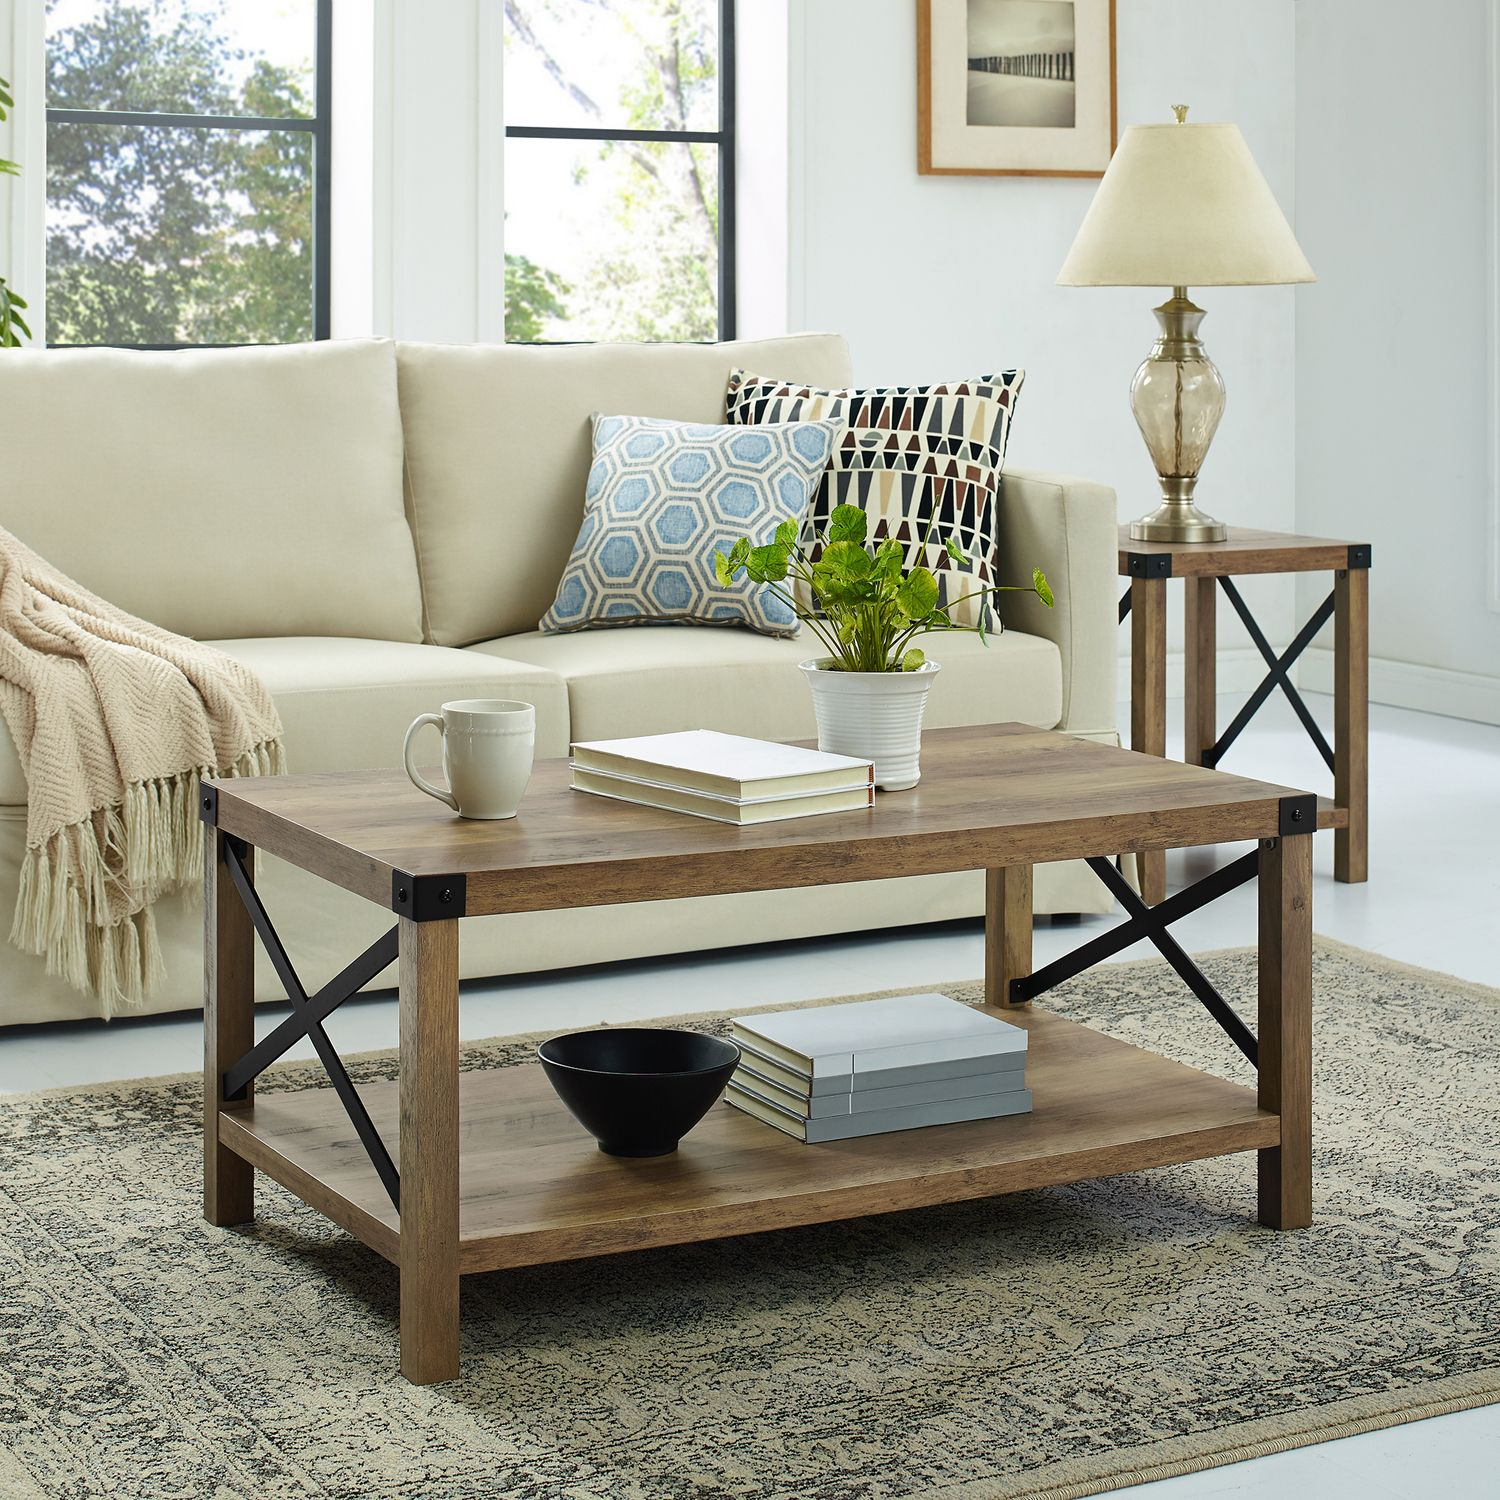 modern farmhouse rustic oak coffee table pier imports accent john lewis side tables painted wood outdoor recliner storage containers nautical dining room chandelier long